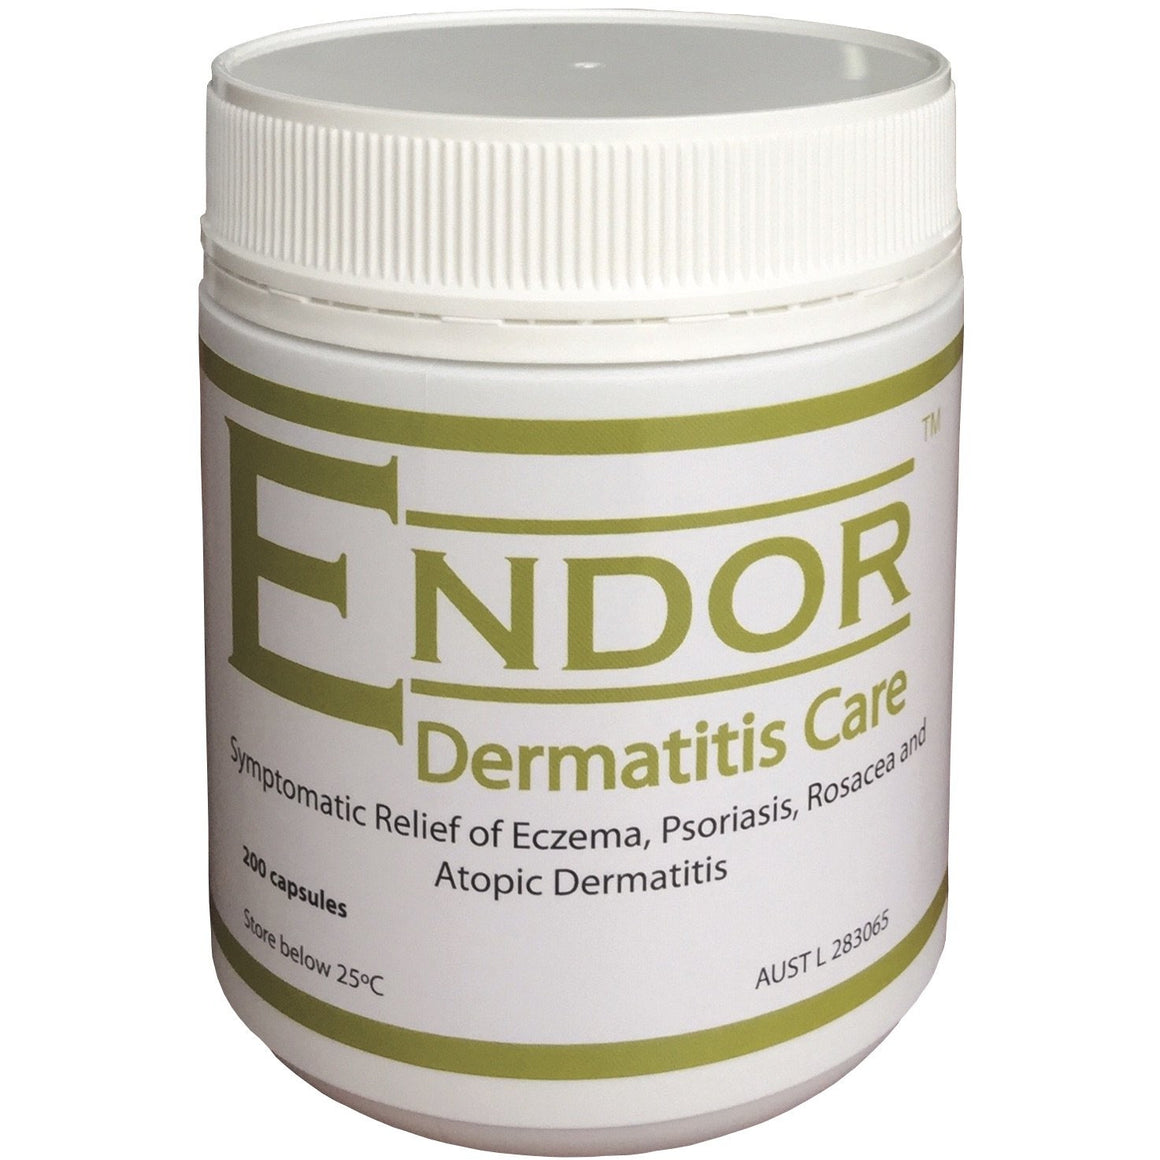 Endor Dermatitis / Excema/ Rosacea Care